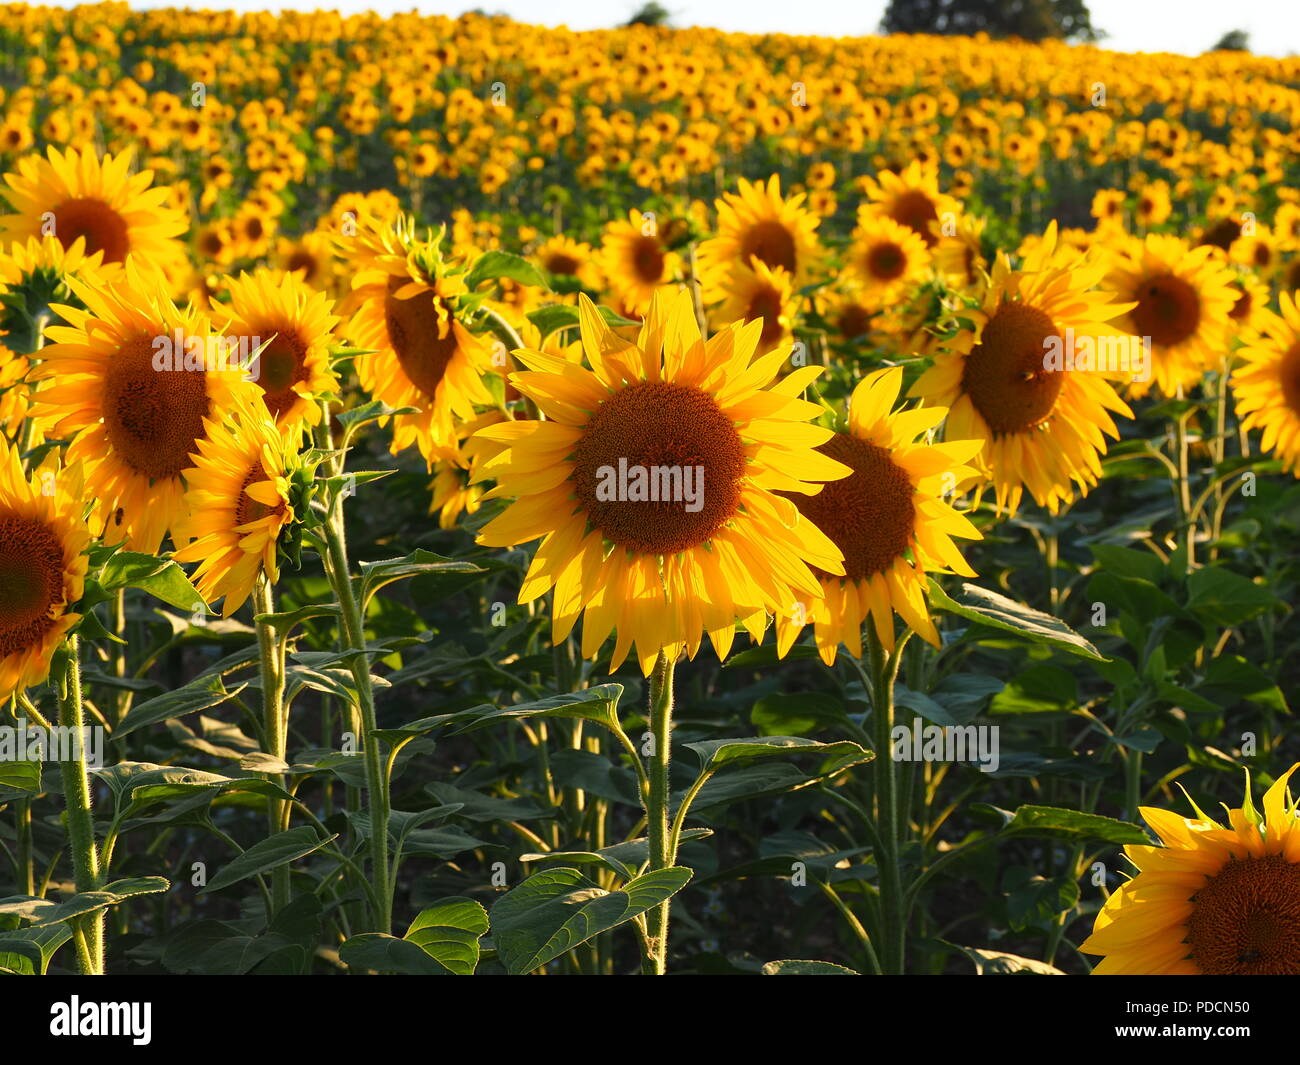 Bright yellow Sunflowers in evening light at Wigginton, Nr Tring, Hertfordshire - Stock Image